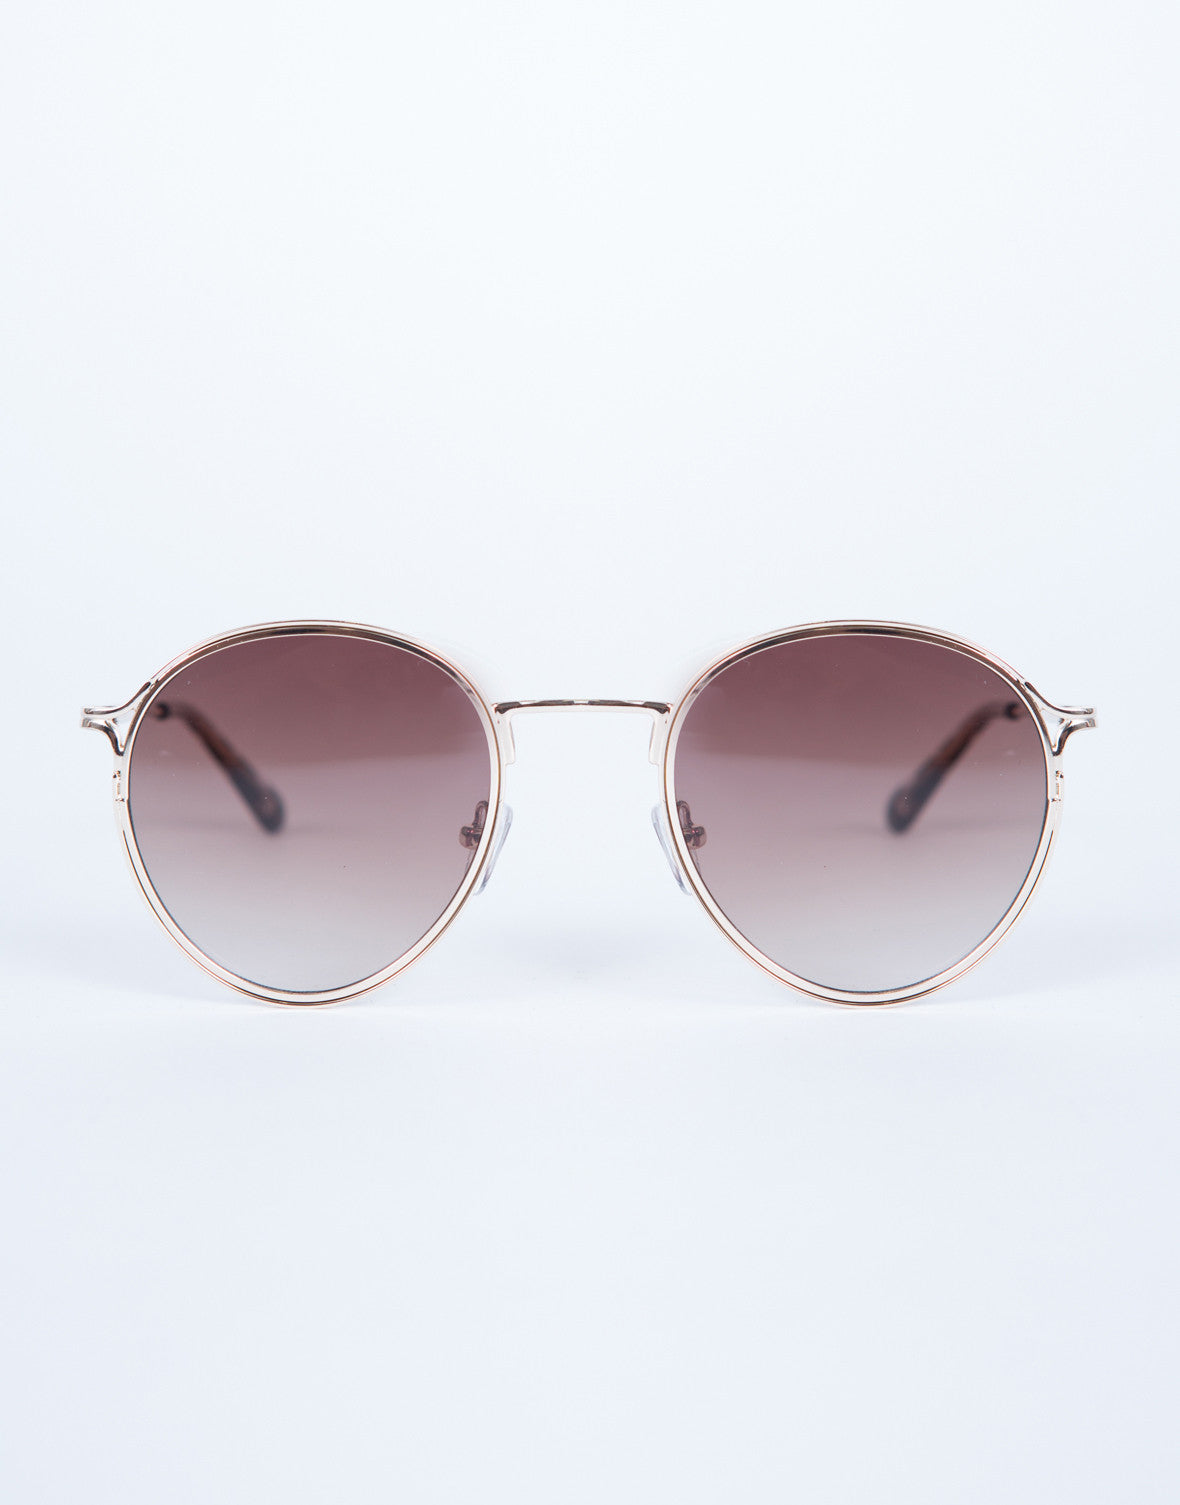 The Lennon Sunnies